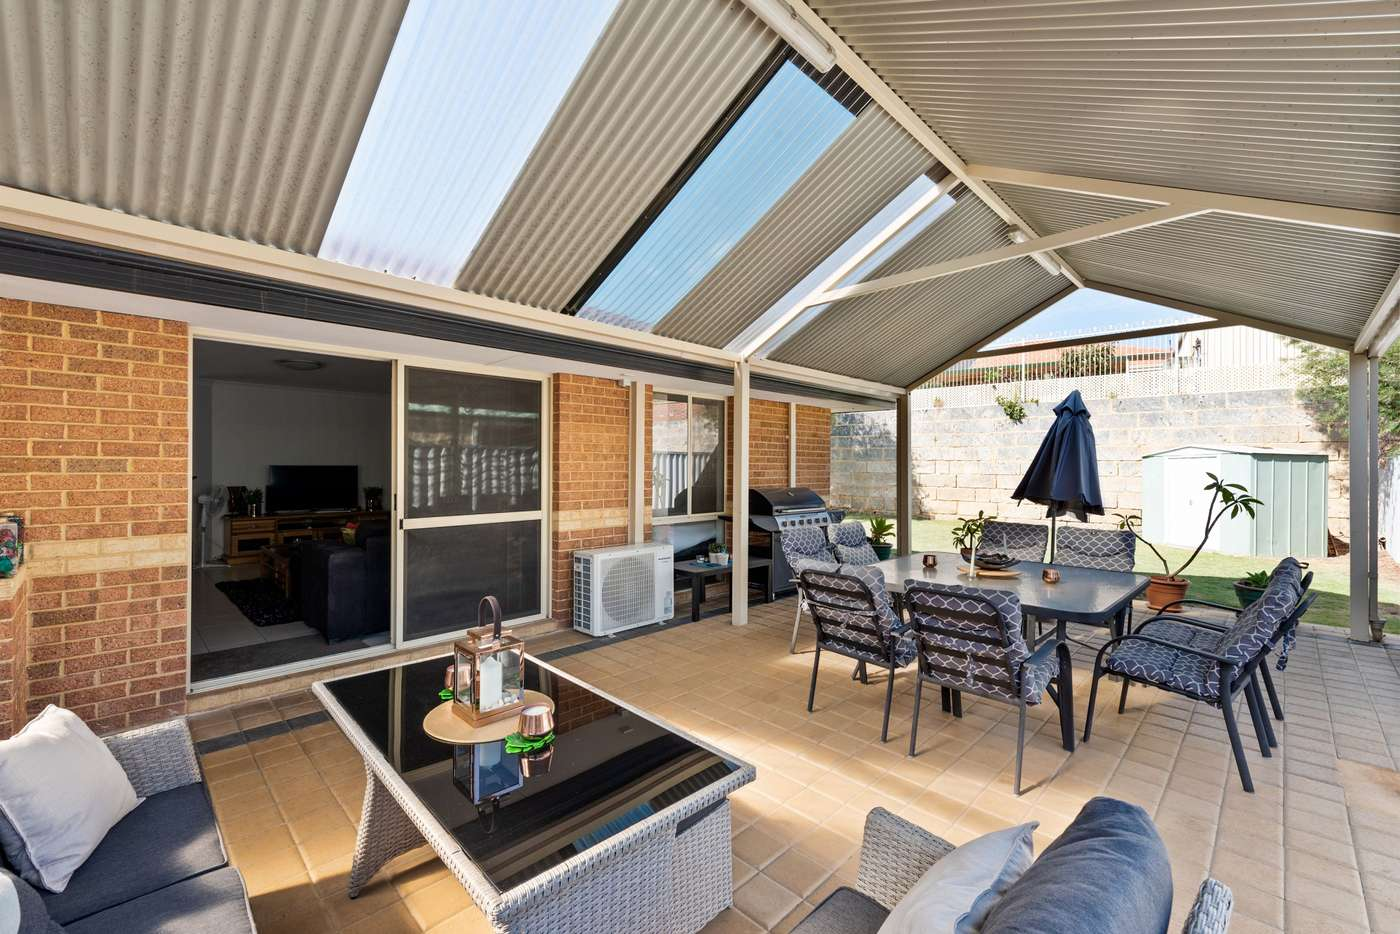 Main view of Homely house listing, 39 Delamere Avenue, Currambine WA 6028